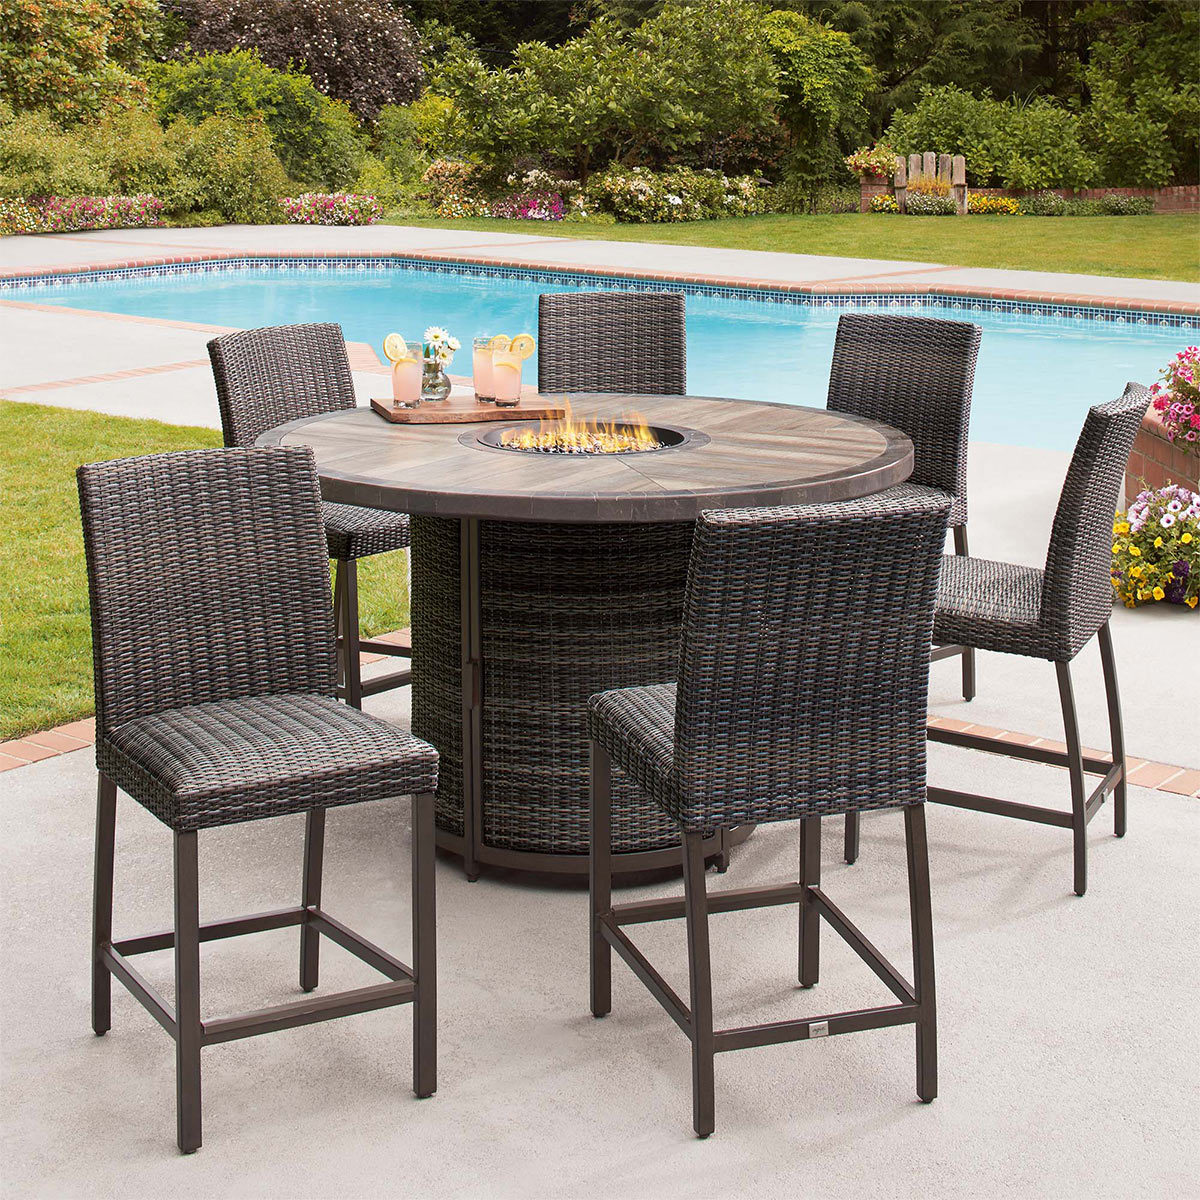 Agio St Louis 7 Piece Woven Bar Height Fire Chat Set Cover Costco Uk